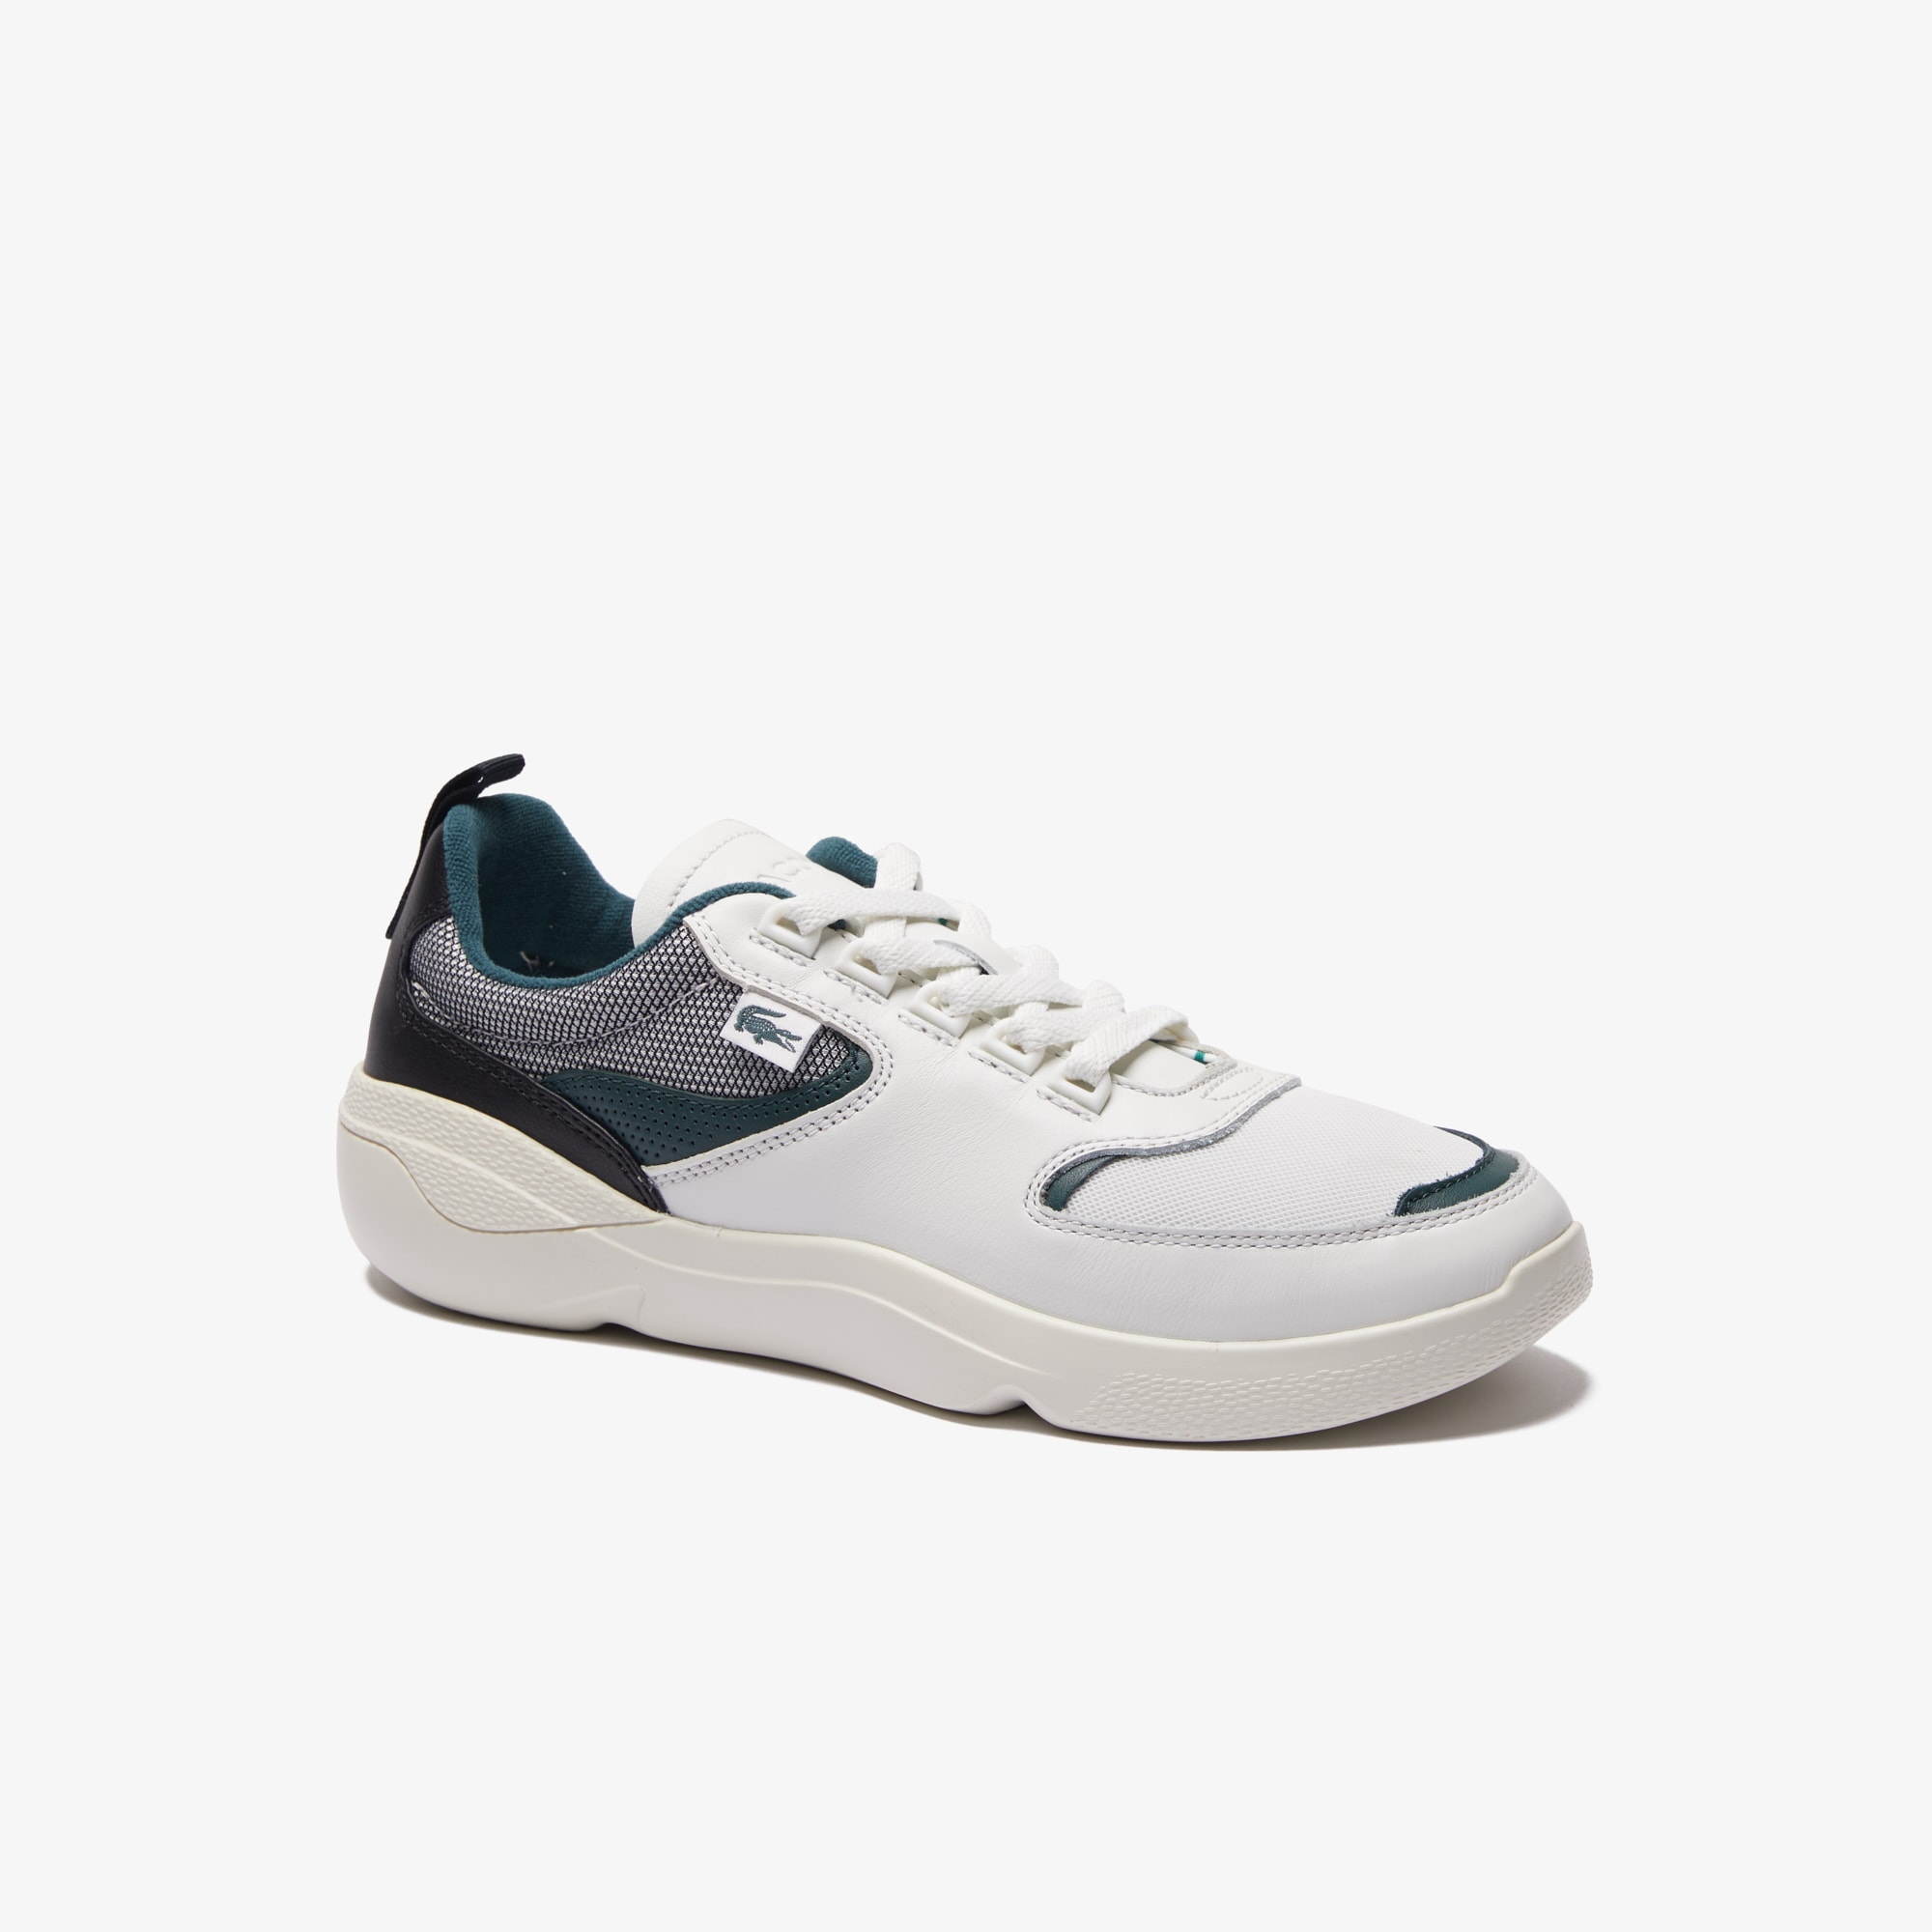 eeb9d581f80 Lacoste shoes - Shop online all Lacoste shoes | LACOSTE